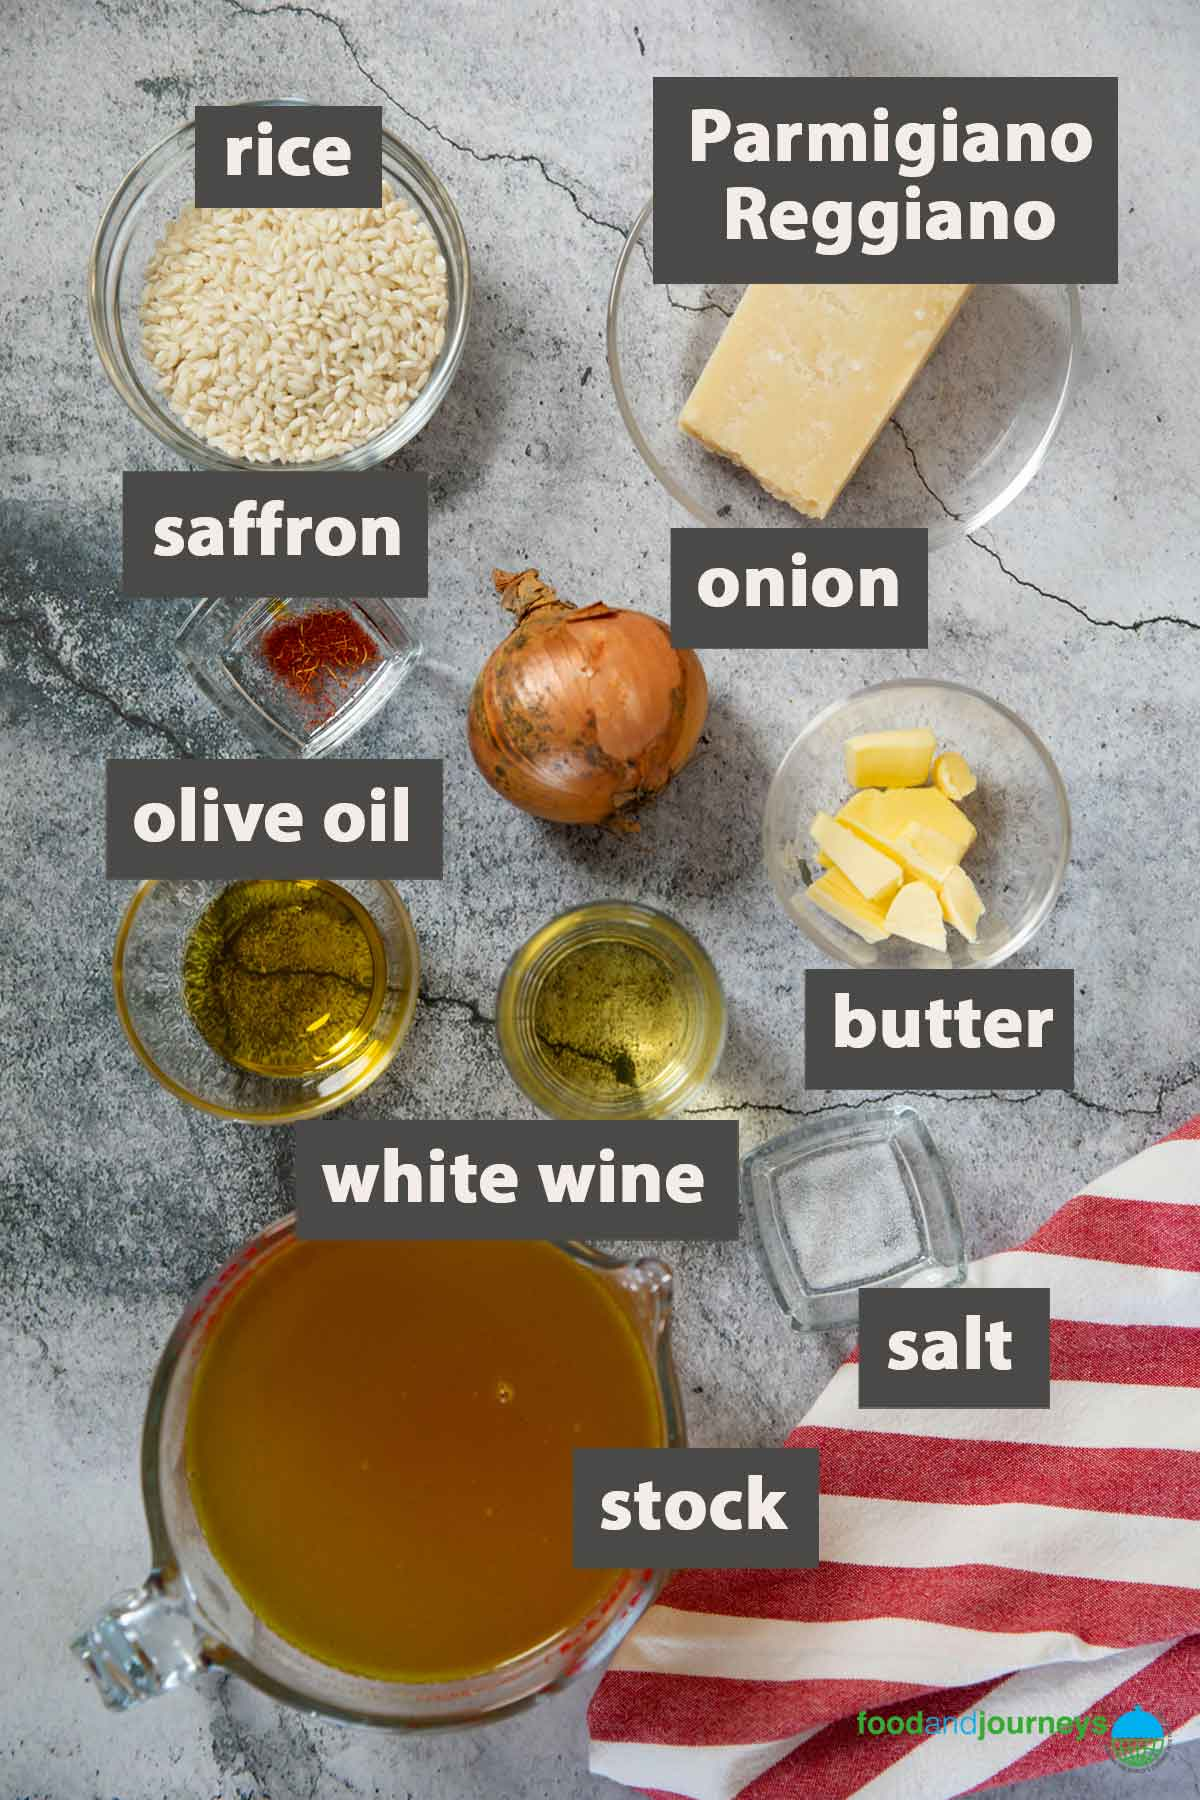 Image showing all the ingredients you need for making risotto milanese at home.